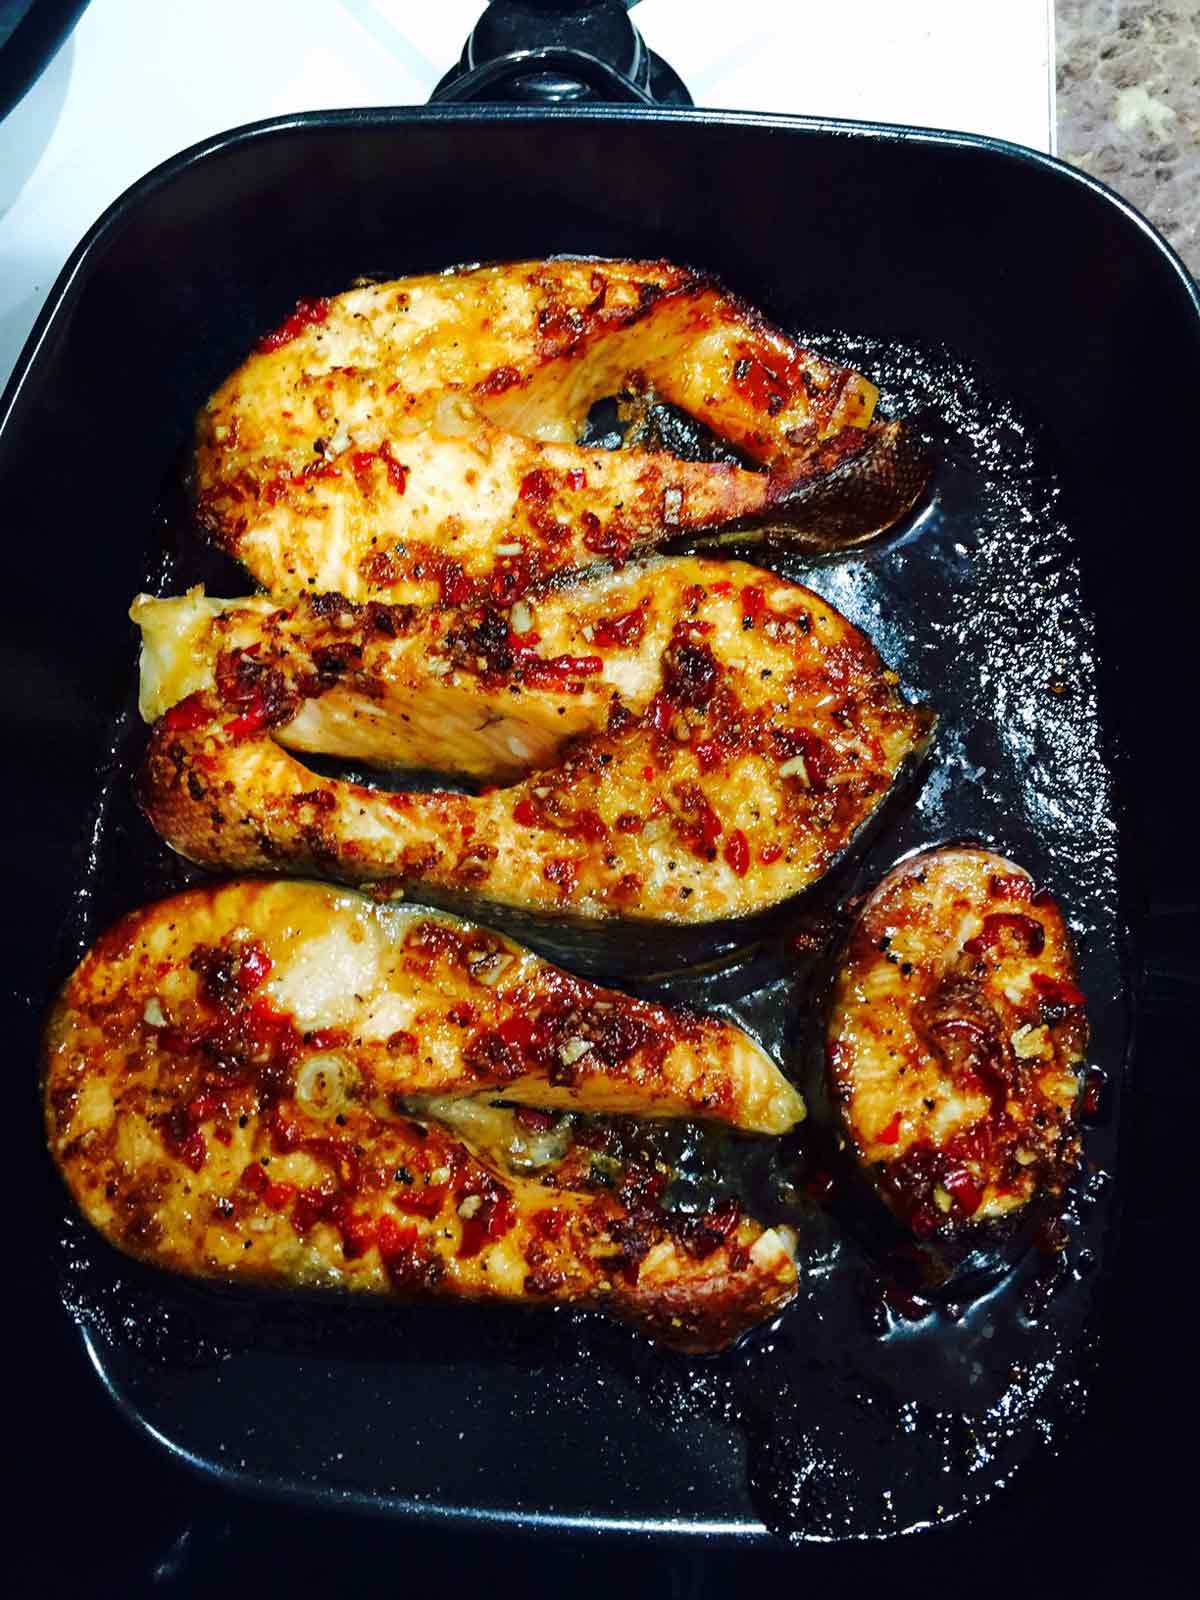 Baked spicy salmon fillets